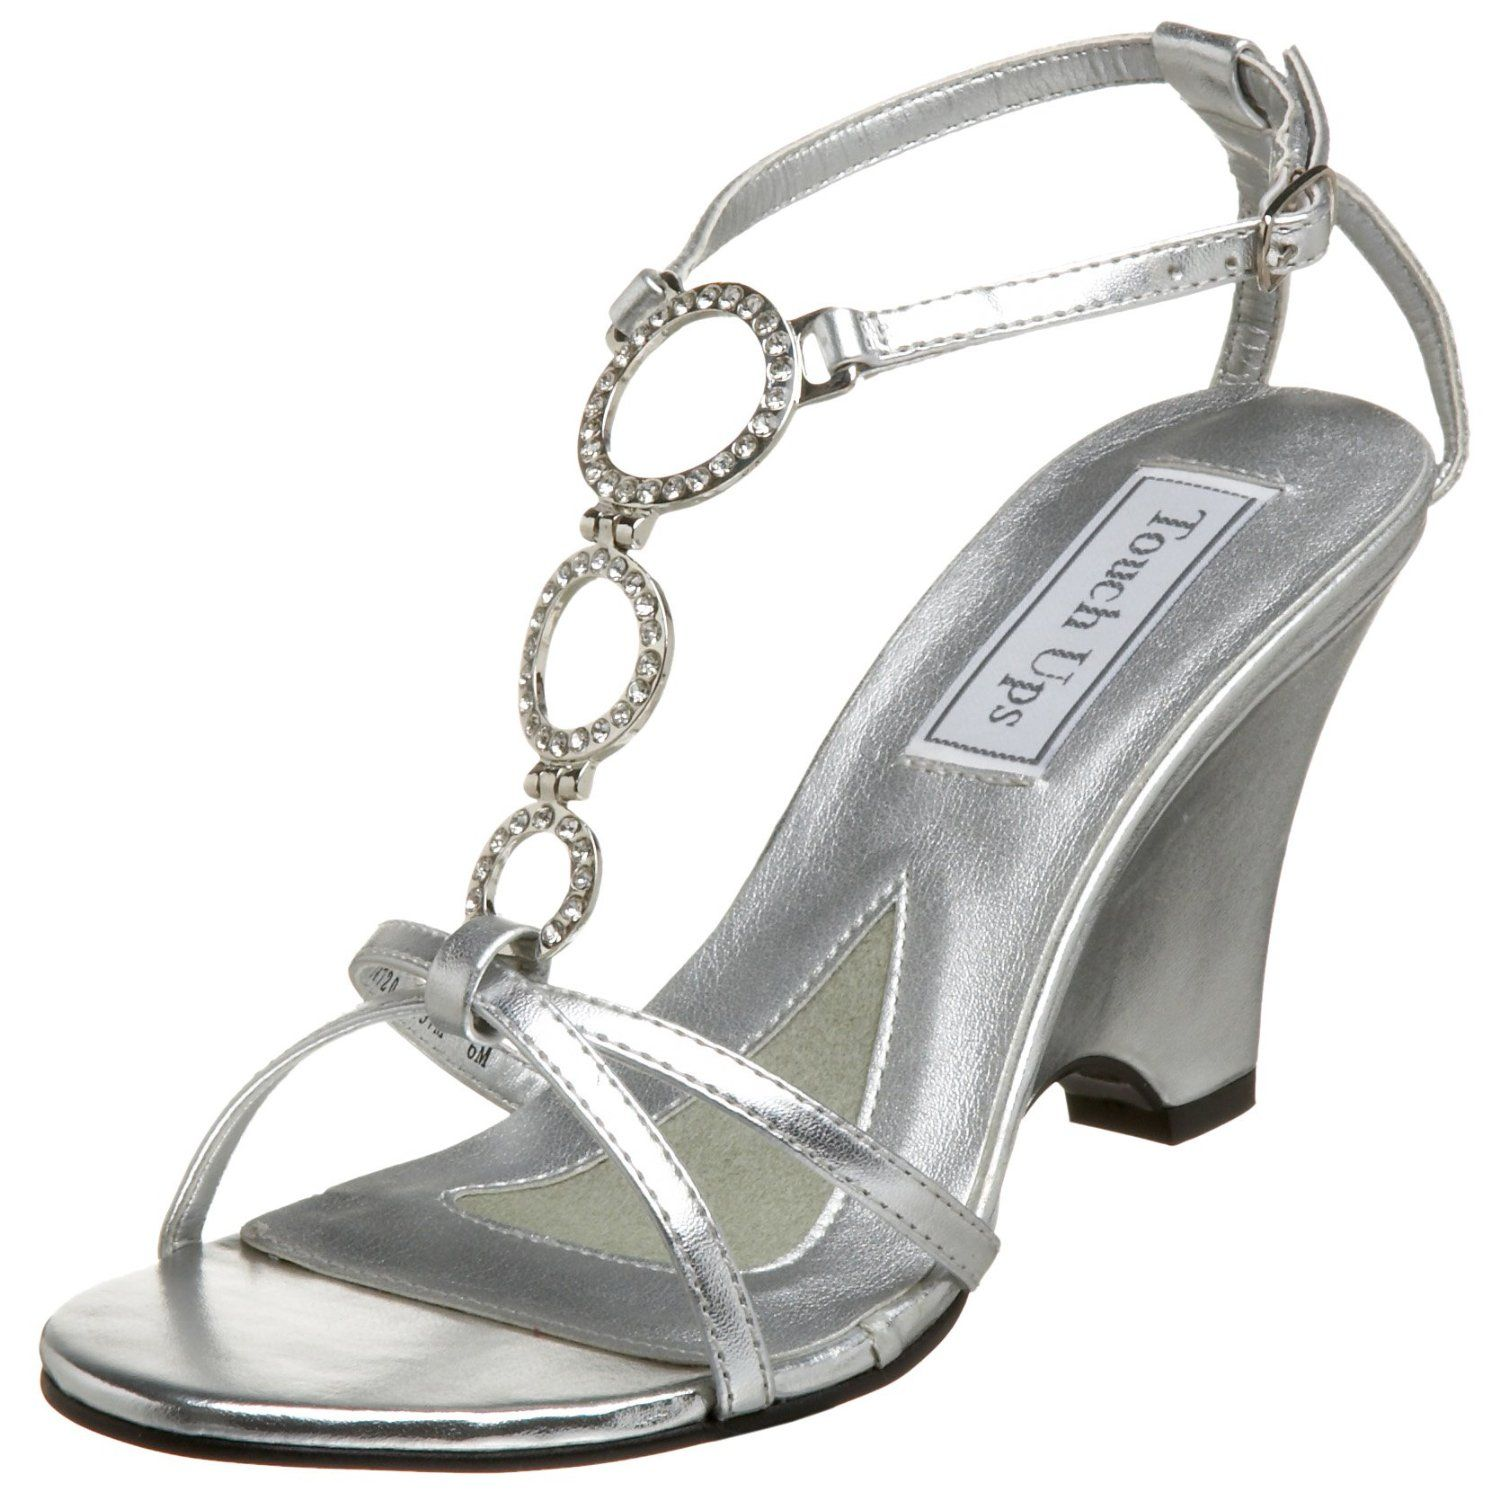 Amazon.com: Touch Ups Women's Arlene Wedge Sandal: Shoes